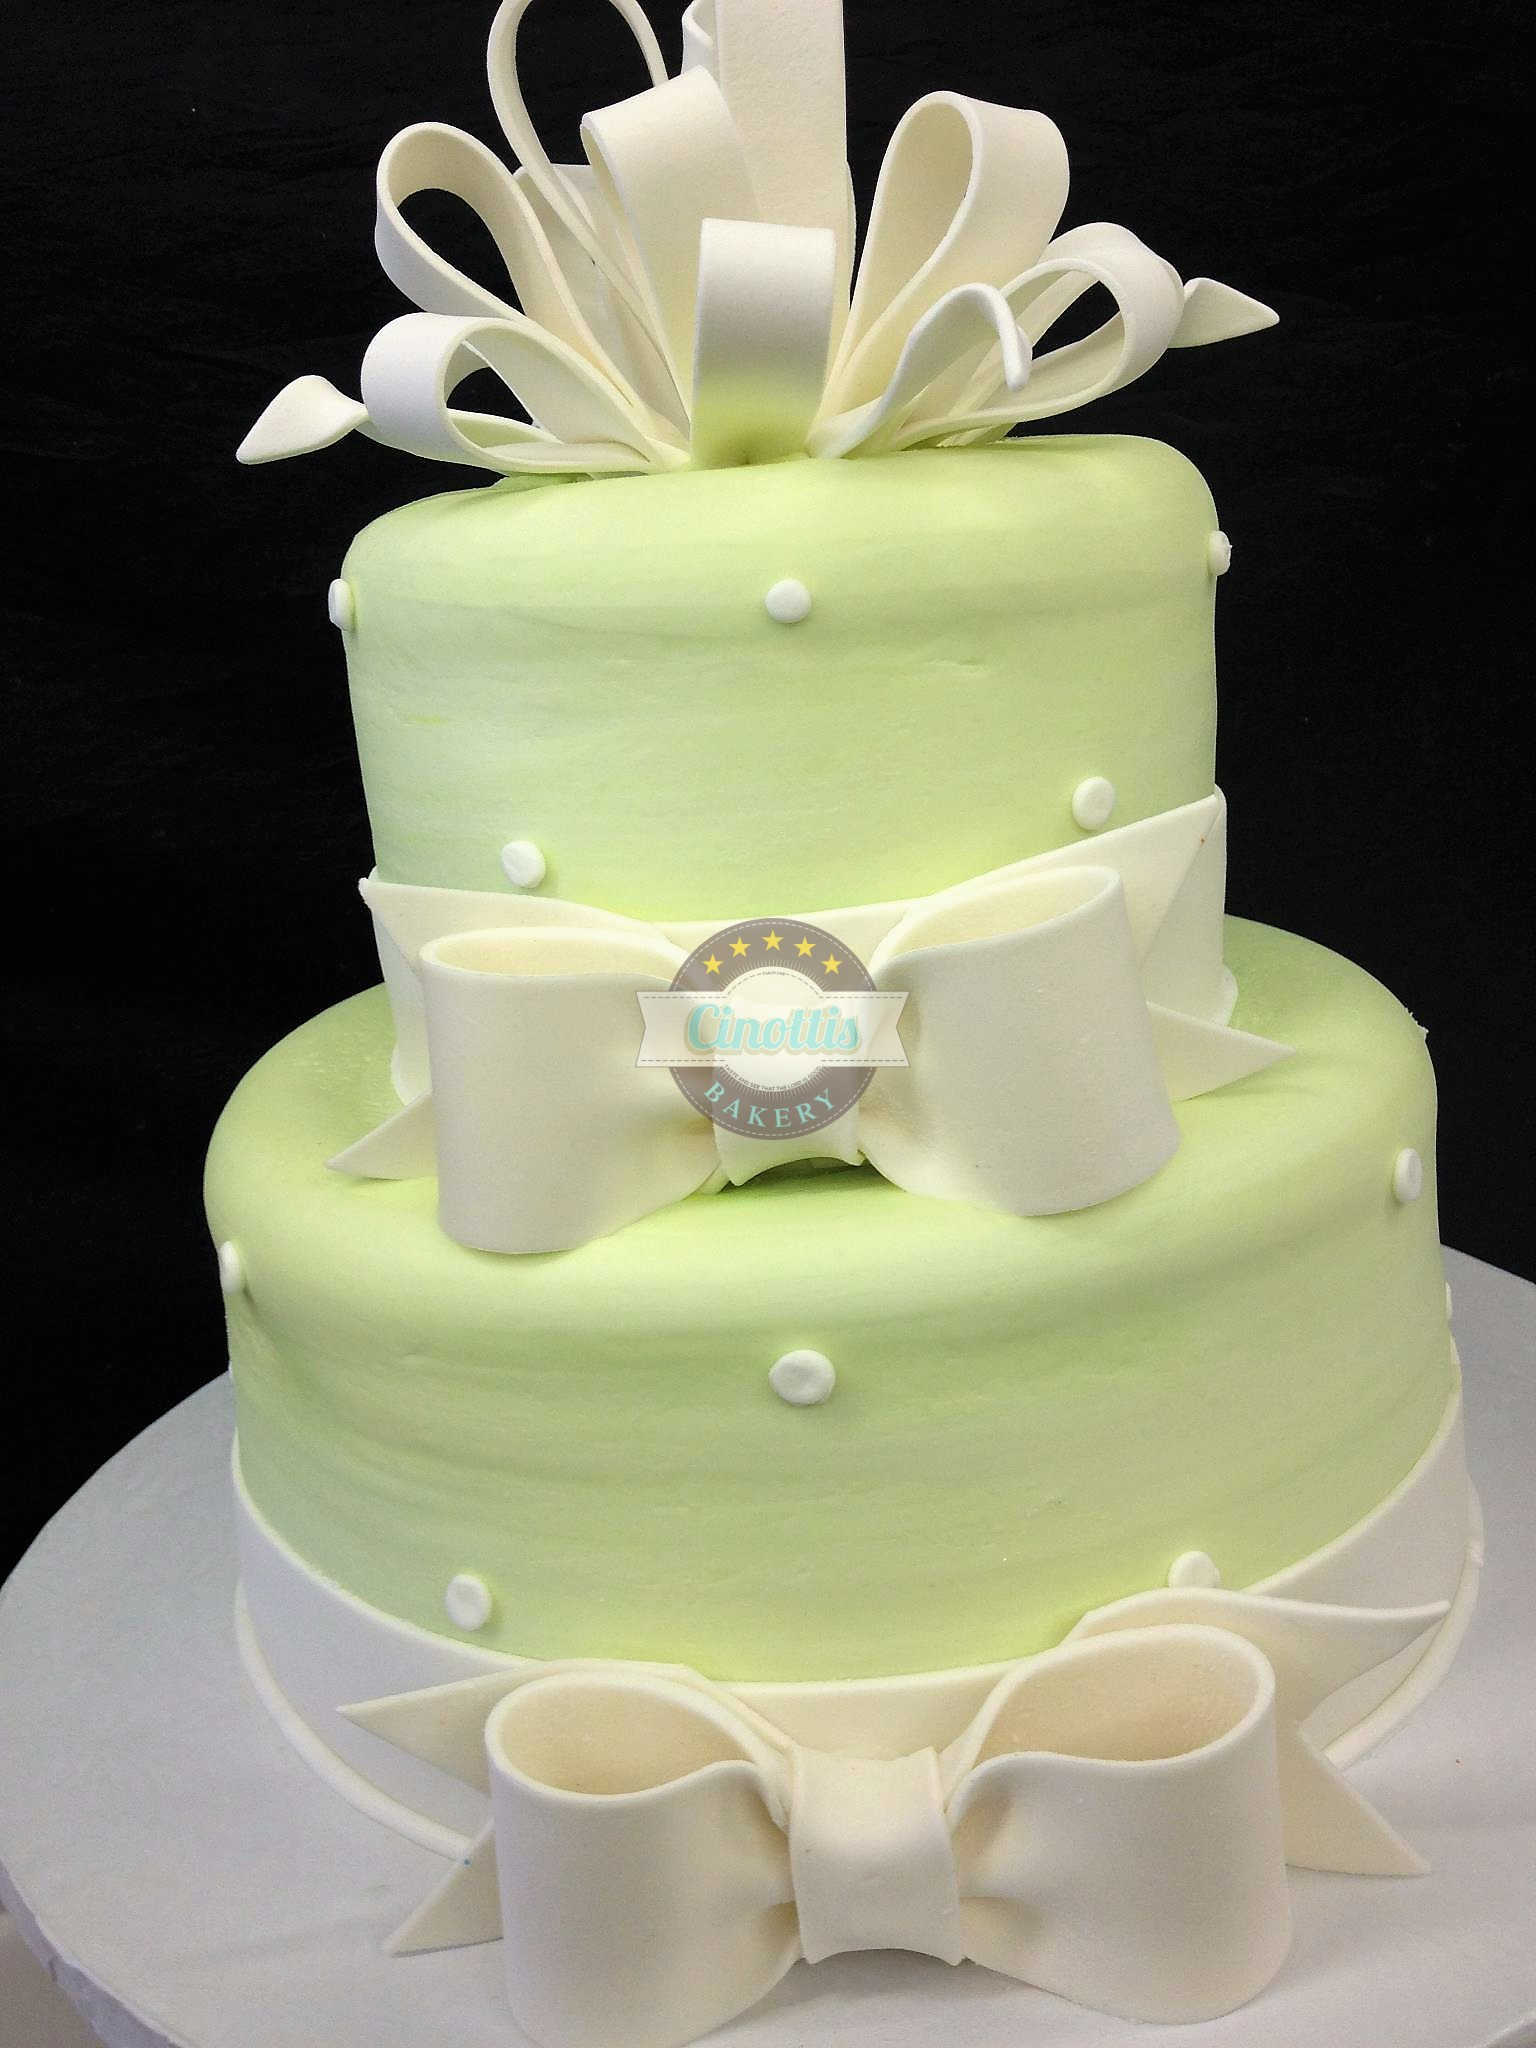 Ribbons and Bows, Wedding, Cake, Bows, Ribbons, Dots, Pastel, Birthday, Shower, Baby, Jacksonville, Beach, Cinottis, Buttercream, Fondant